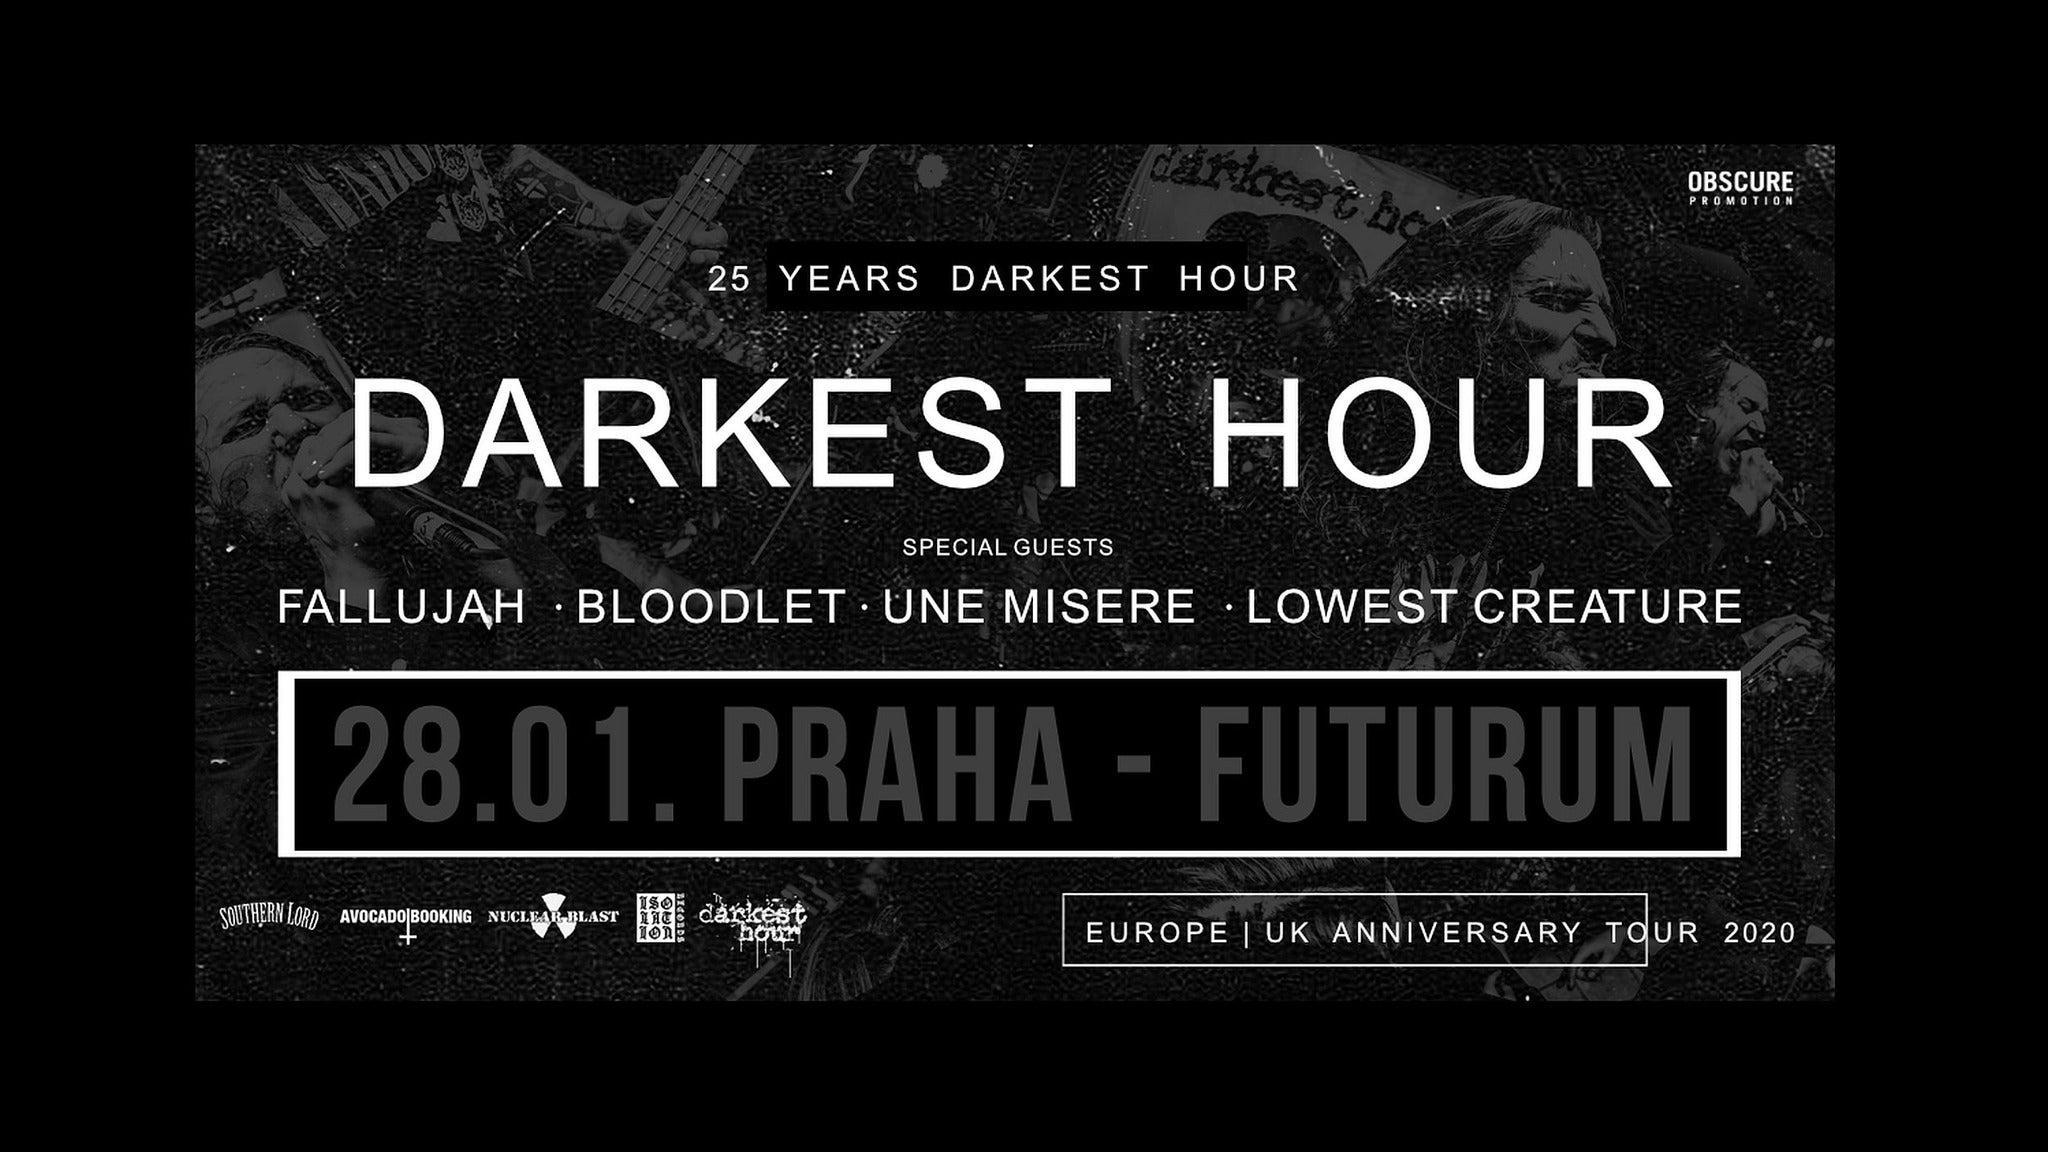 Darkest hour, Fallujah, Bloodlet, Une misere, Lowest creature